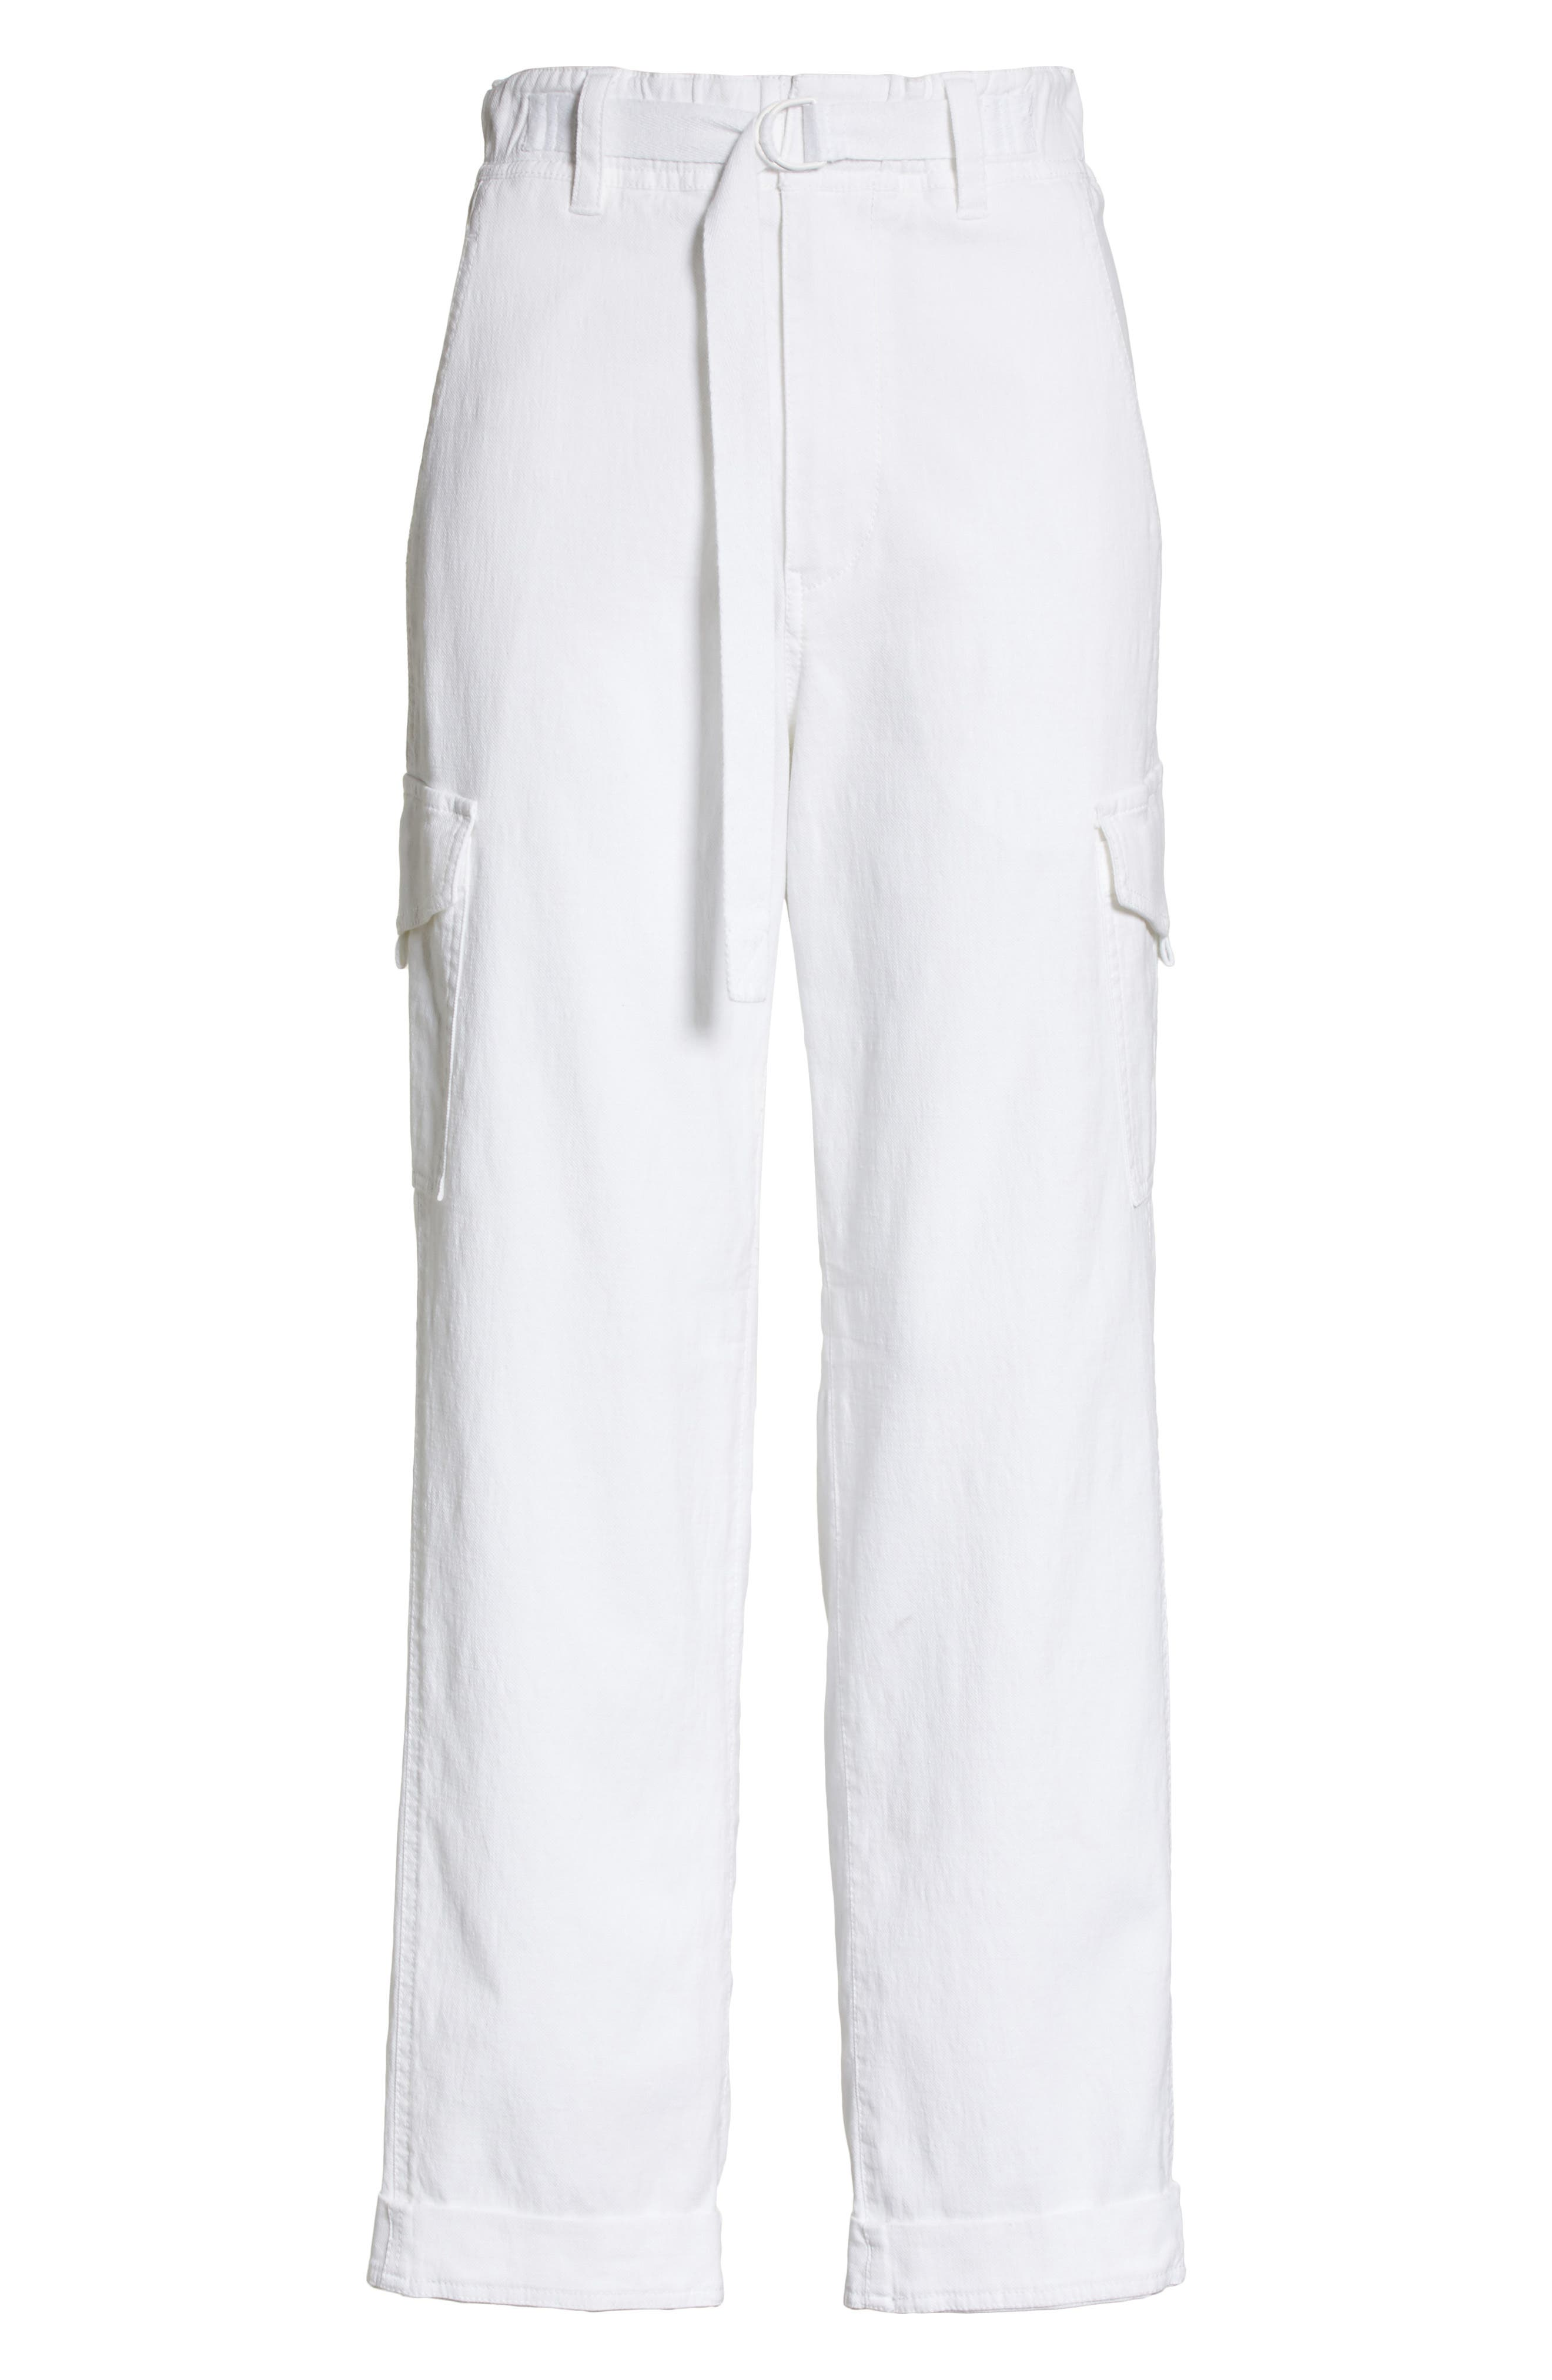 Tapered Utility Stretch Cotton Pants,                             Alternate thumbnail 6, color,                             137